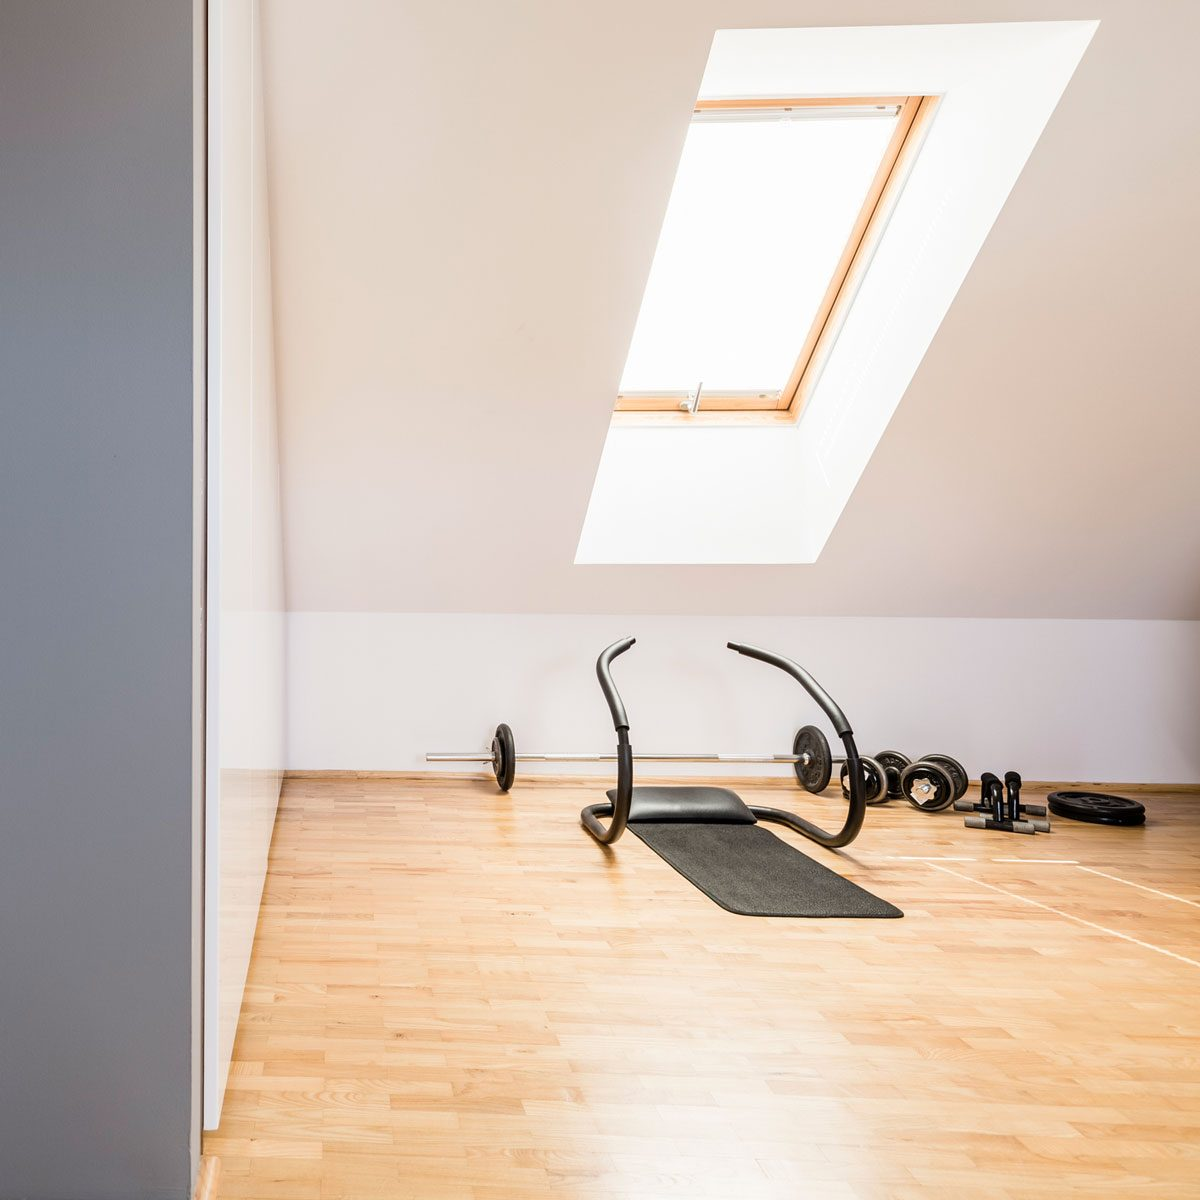 Set Up a Basement or Attic Gym